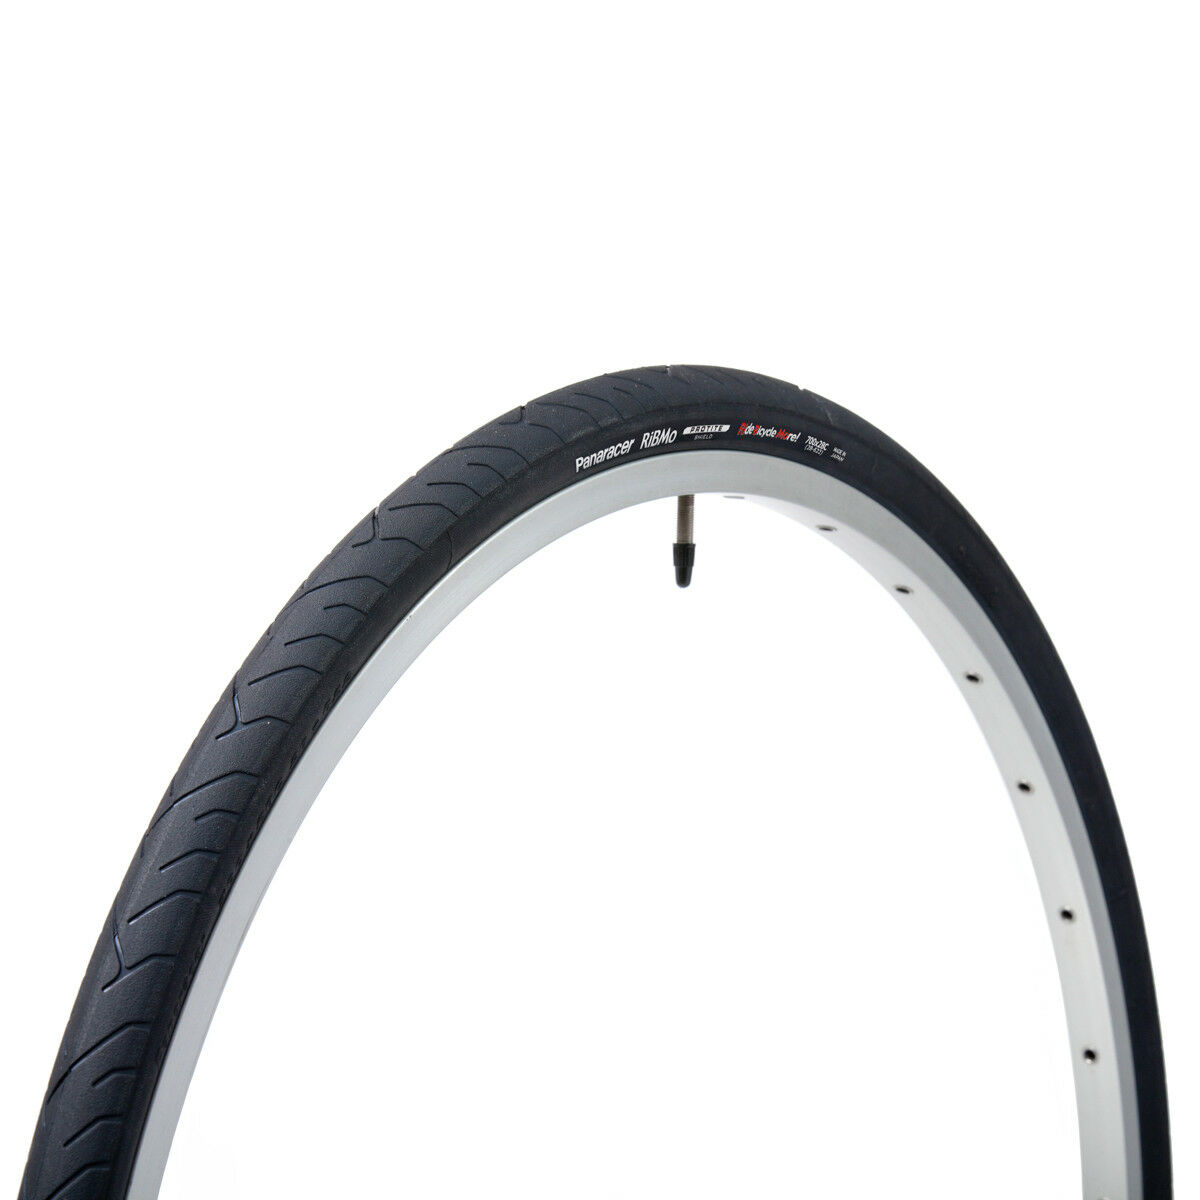 PANARACER - RIBMO PredITE MILE (CITY   ROAD    TOURING) BICYCLE WIRE BEAD TIRE  more affordable